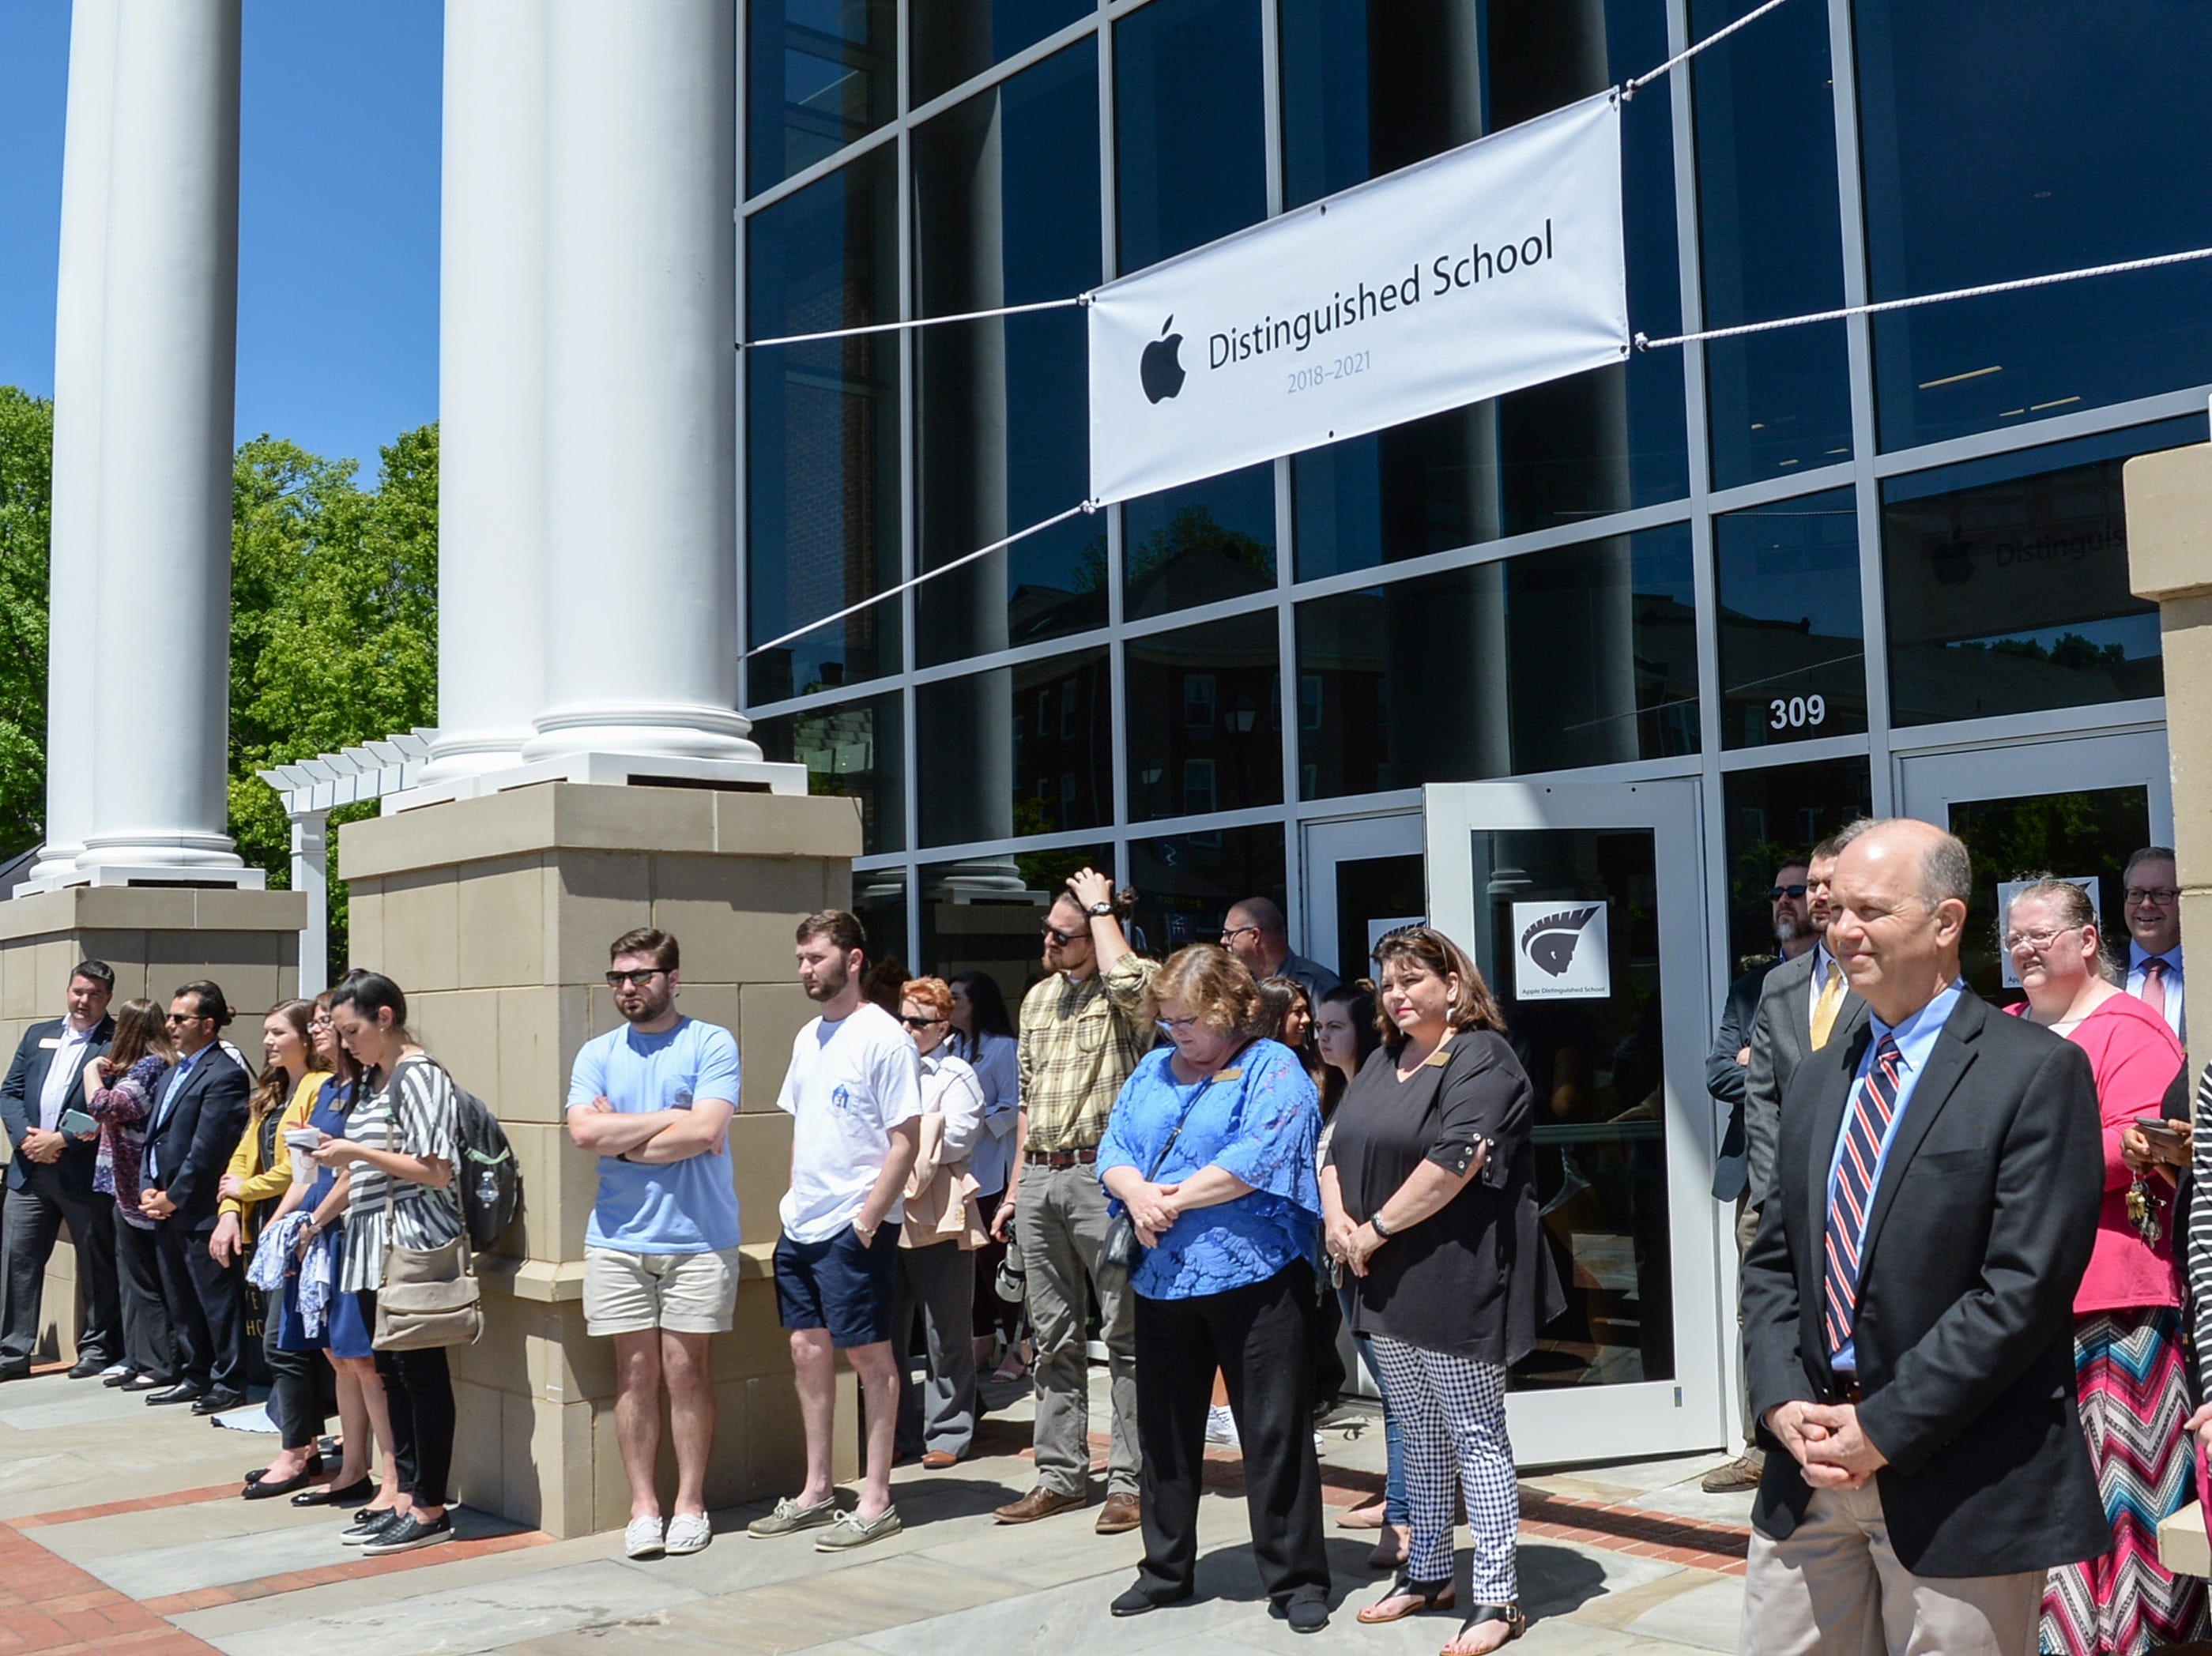 Students and faculty watch as Anne Van Middlesworth, a National Higher Education Market Development Manager for Apple presents the Apple Distinguished School award to President Evans Whitaker at the event in front of the G. Ross Anderson Student Center at Anderson University in Anderson Tuesday. It was the third time receiving the distinction since the school started a digital learning initiative in 2011.